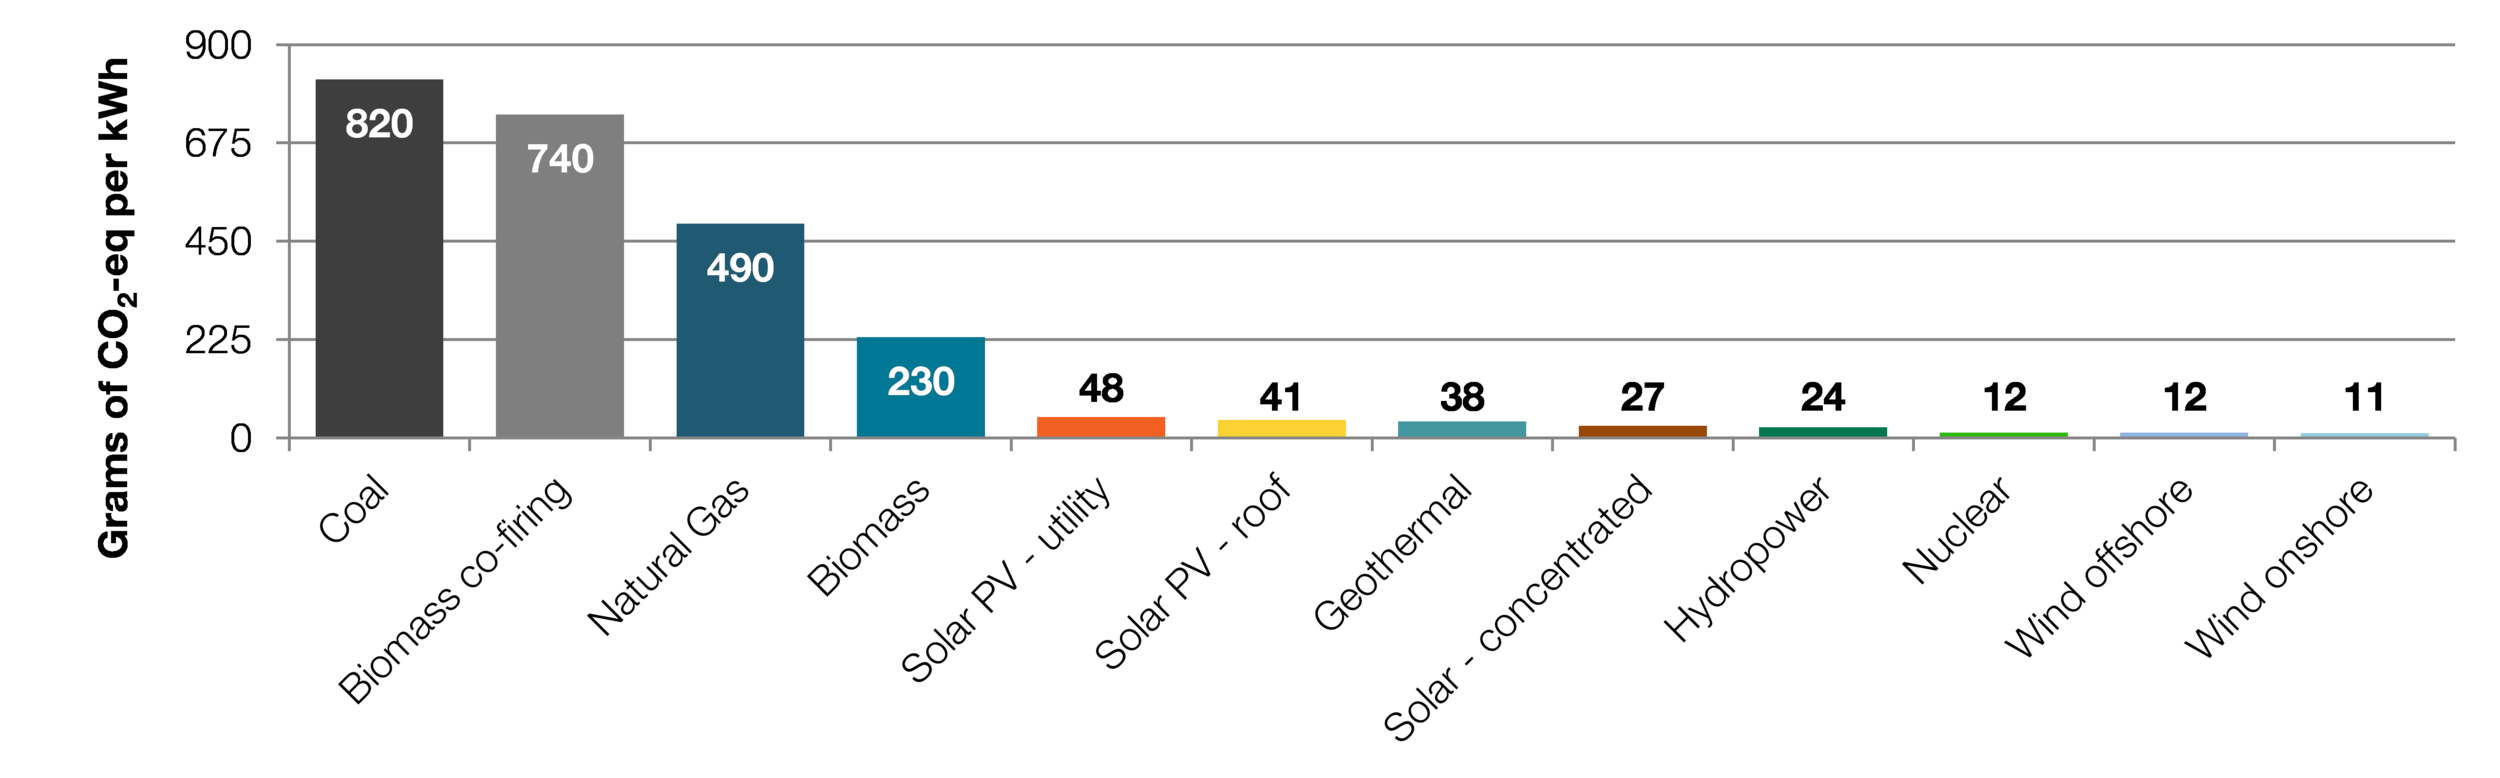 Exhibit : Lifecycle greenhouse gas emissions of energy sources (median estimate) of electricity generation. Source: IPCC 2014, Annex III Table A.III.2